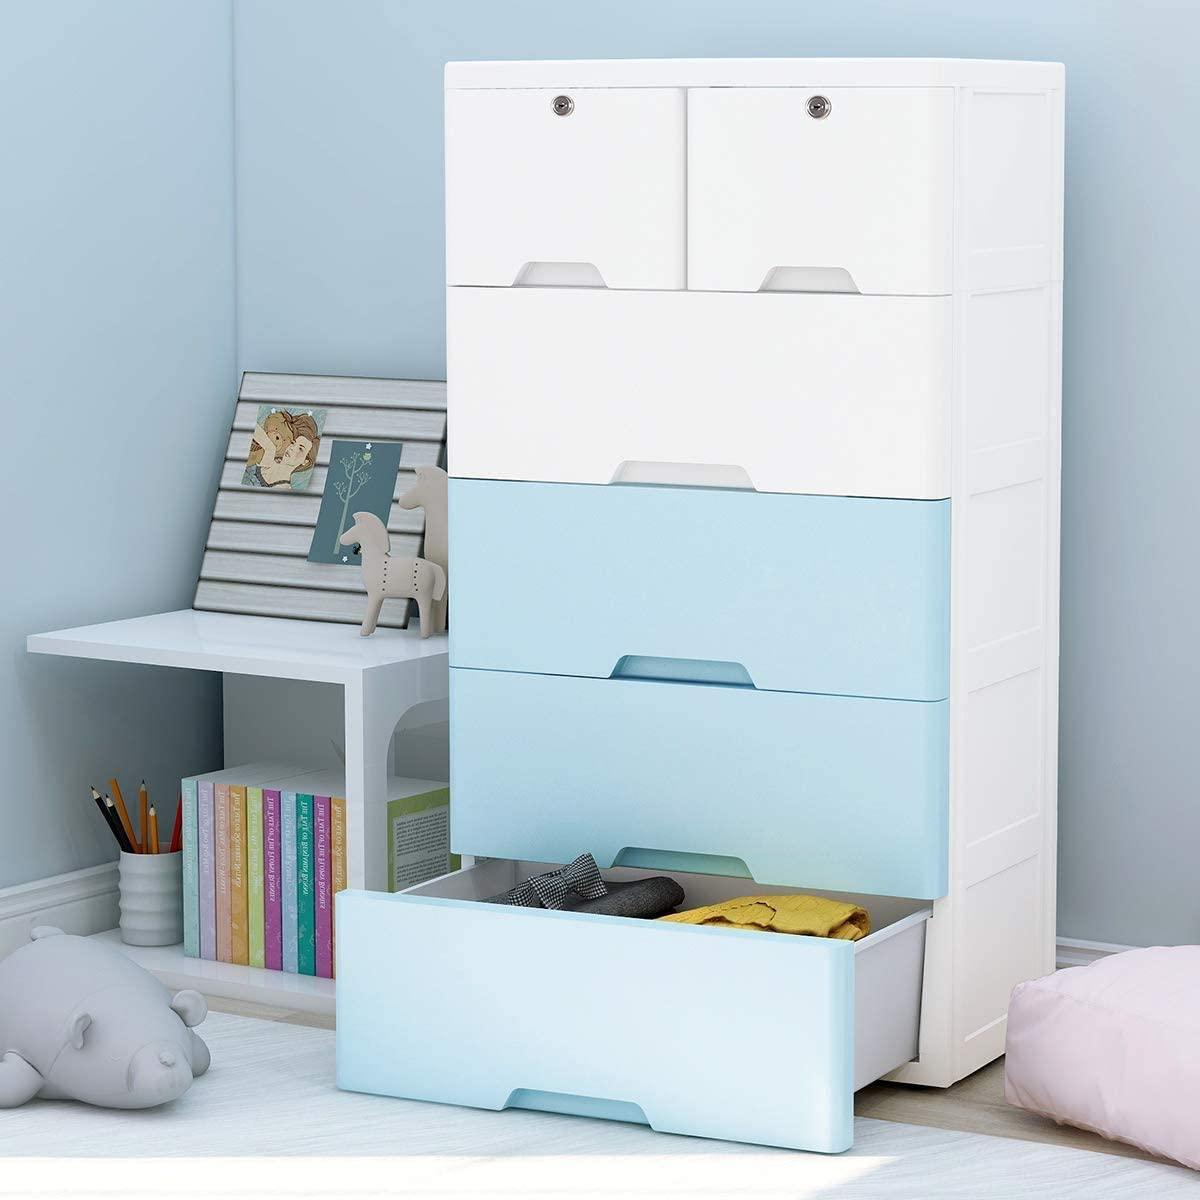 Nafenai 9 Drawer Baby Dresser, Large Lockable Storage Organizer